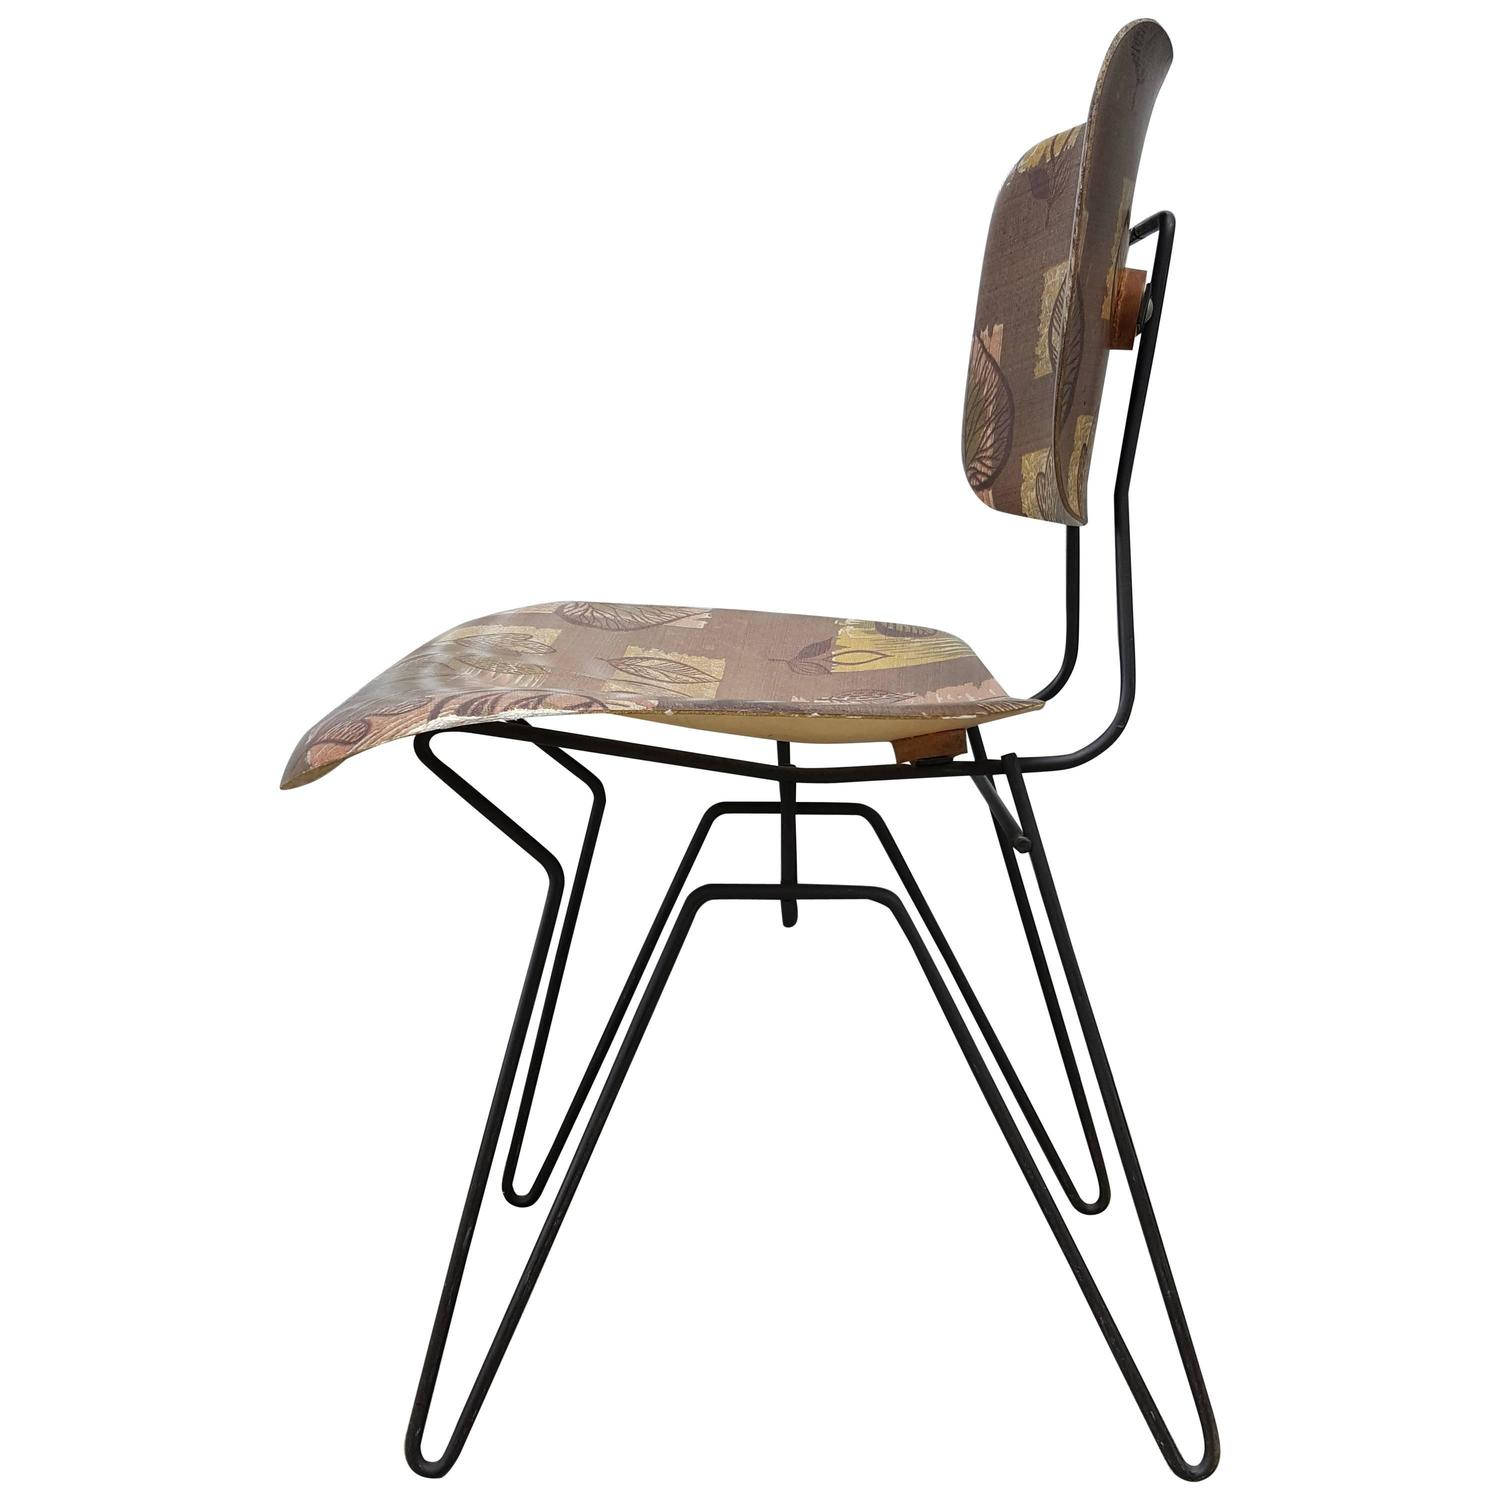 Hobart Wells Iron Hairpin and Formed Fiberglass Lounge Chair For